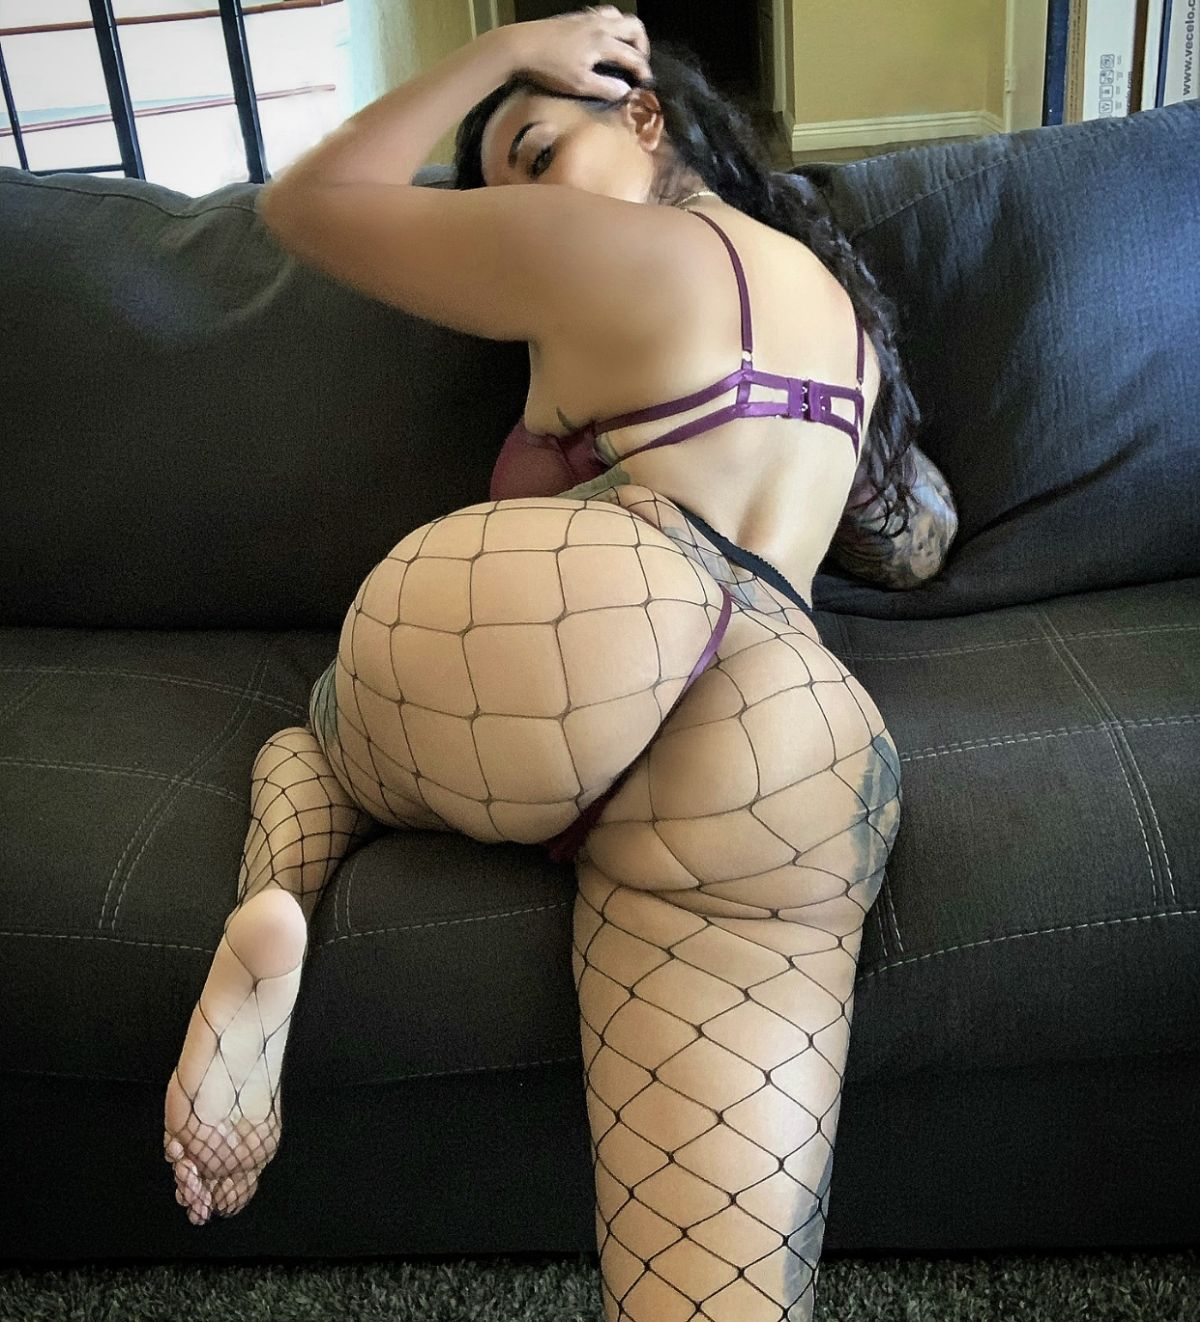 Kat photos and videos onlyfans leaked